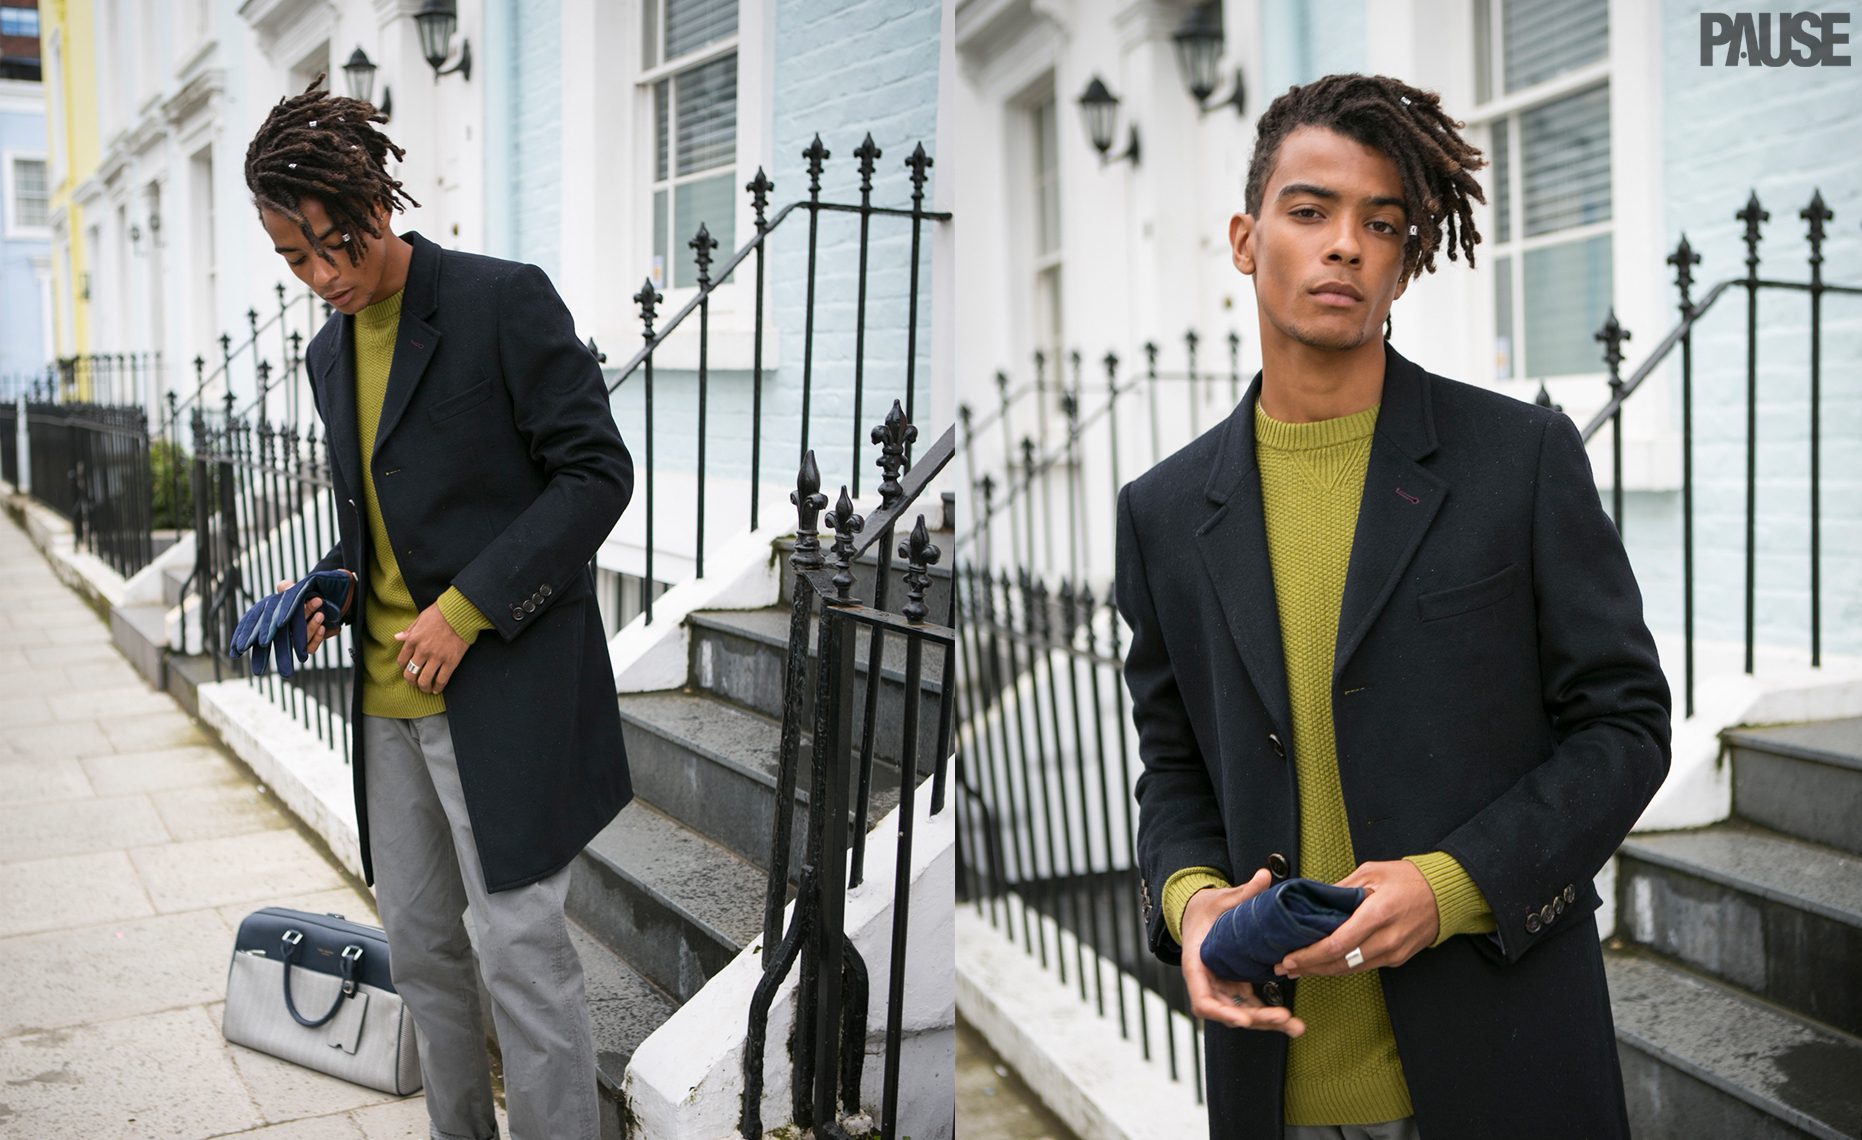 PAUSE x Ted Baker: Timeline